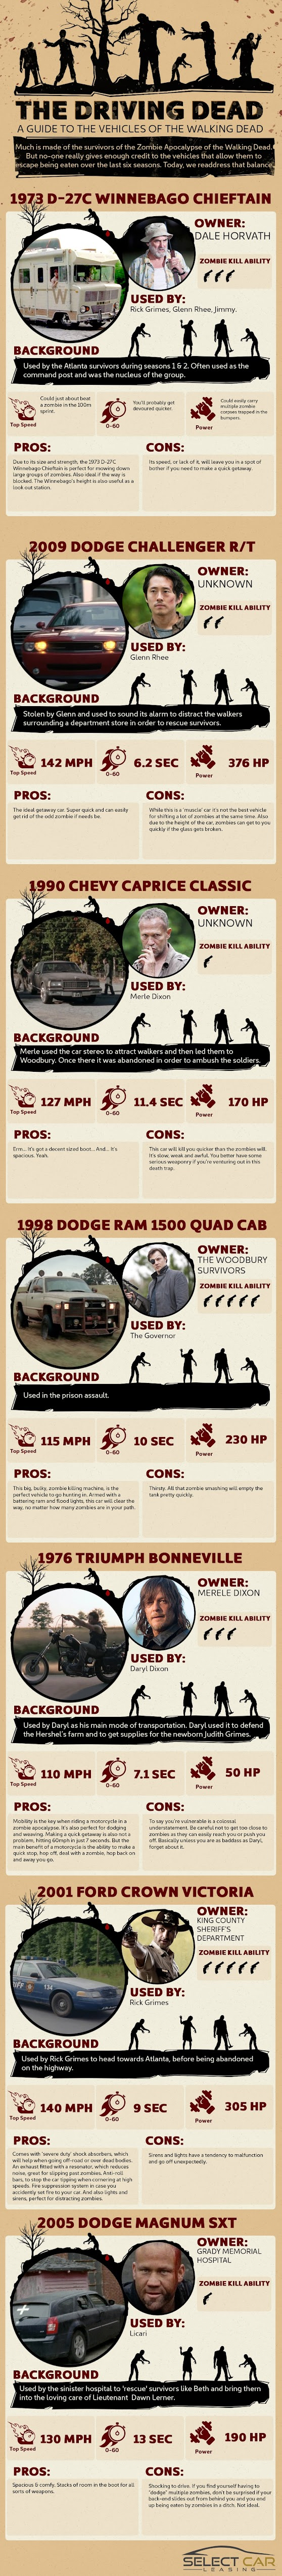 THE DRIVING DEAD - A GUIDE TO THE CARS SEEN IN THE WALKING DEAD